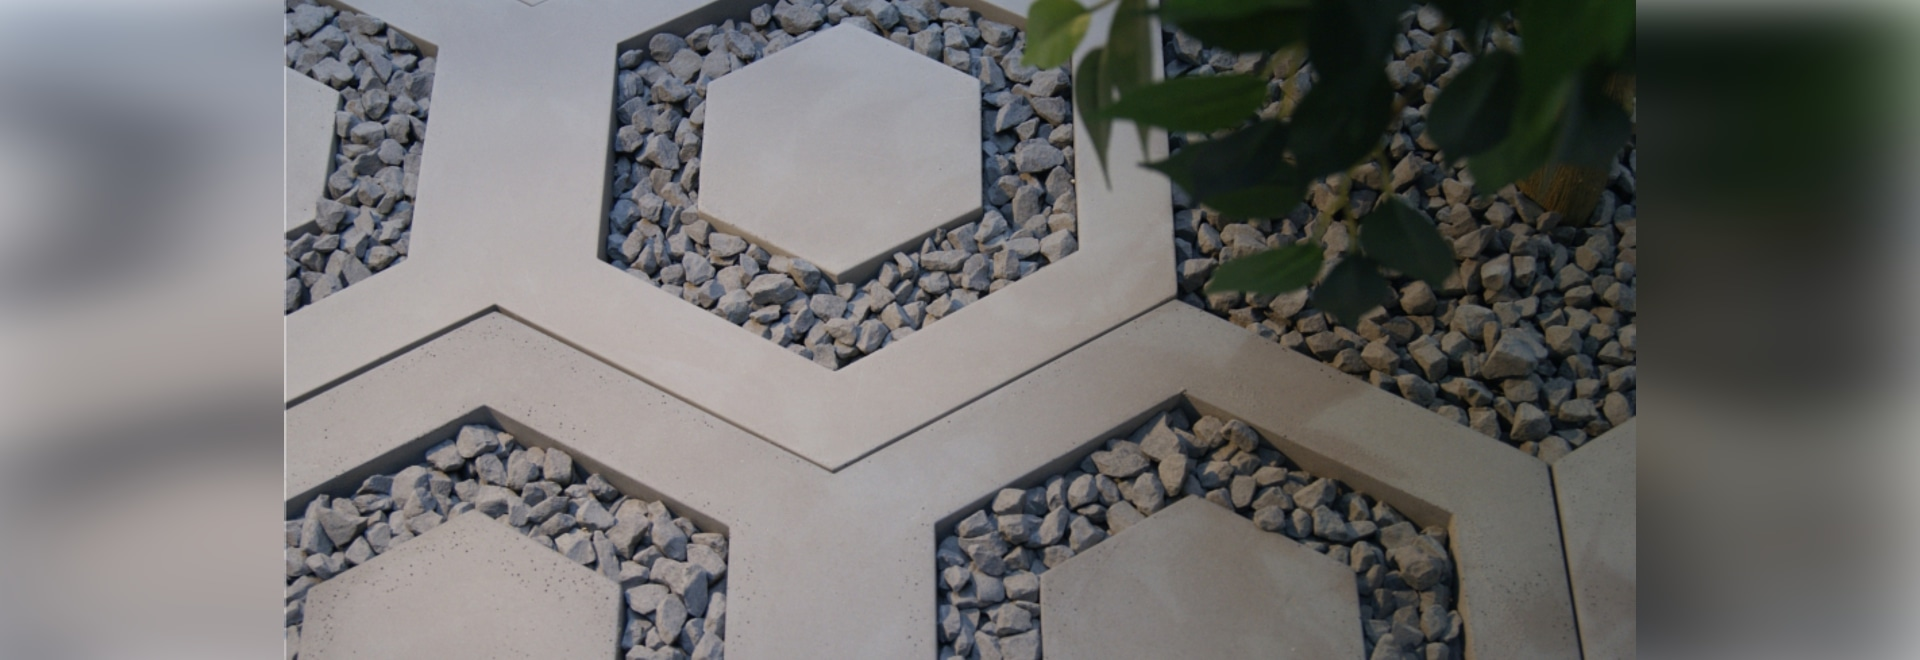 Hexagonal slab made out of architectural concrete.